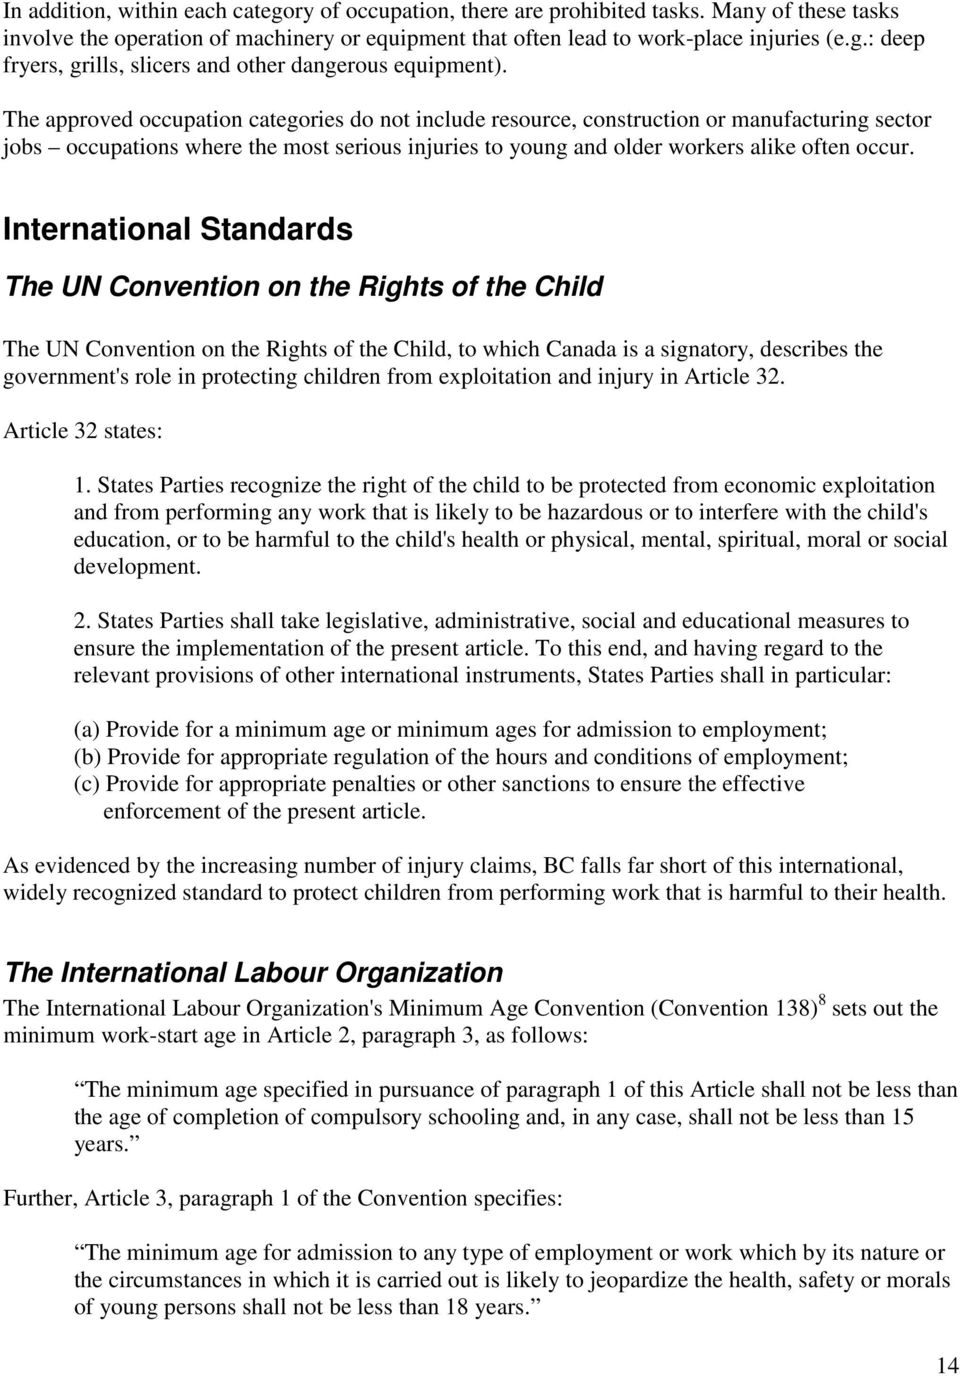 International Standards The UN Convention on the Rights of the Child The UN Convention on the Rights of the Child, to which Canada is a signatory, describes the government's role in protecting